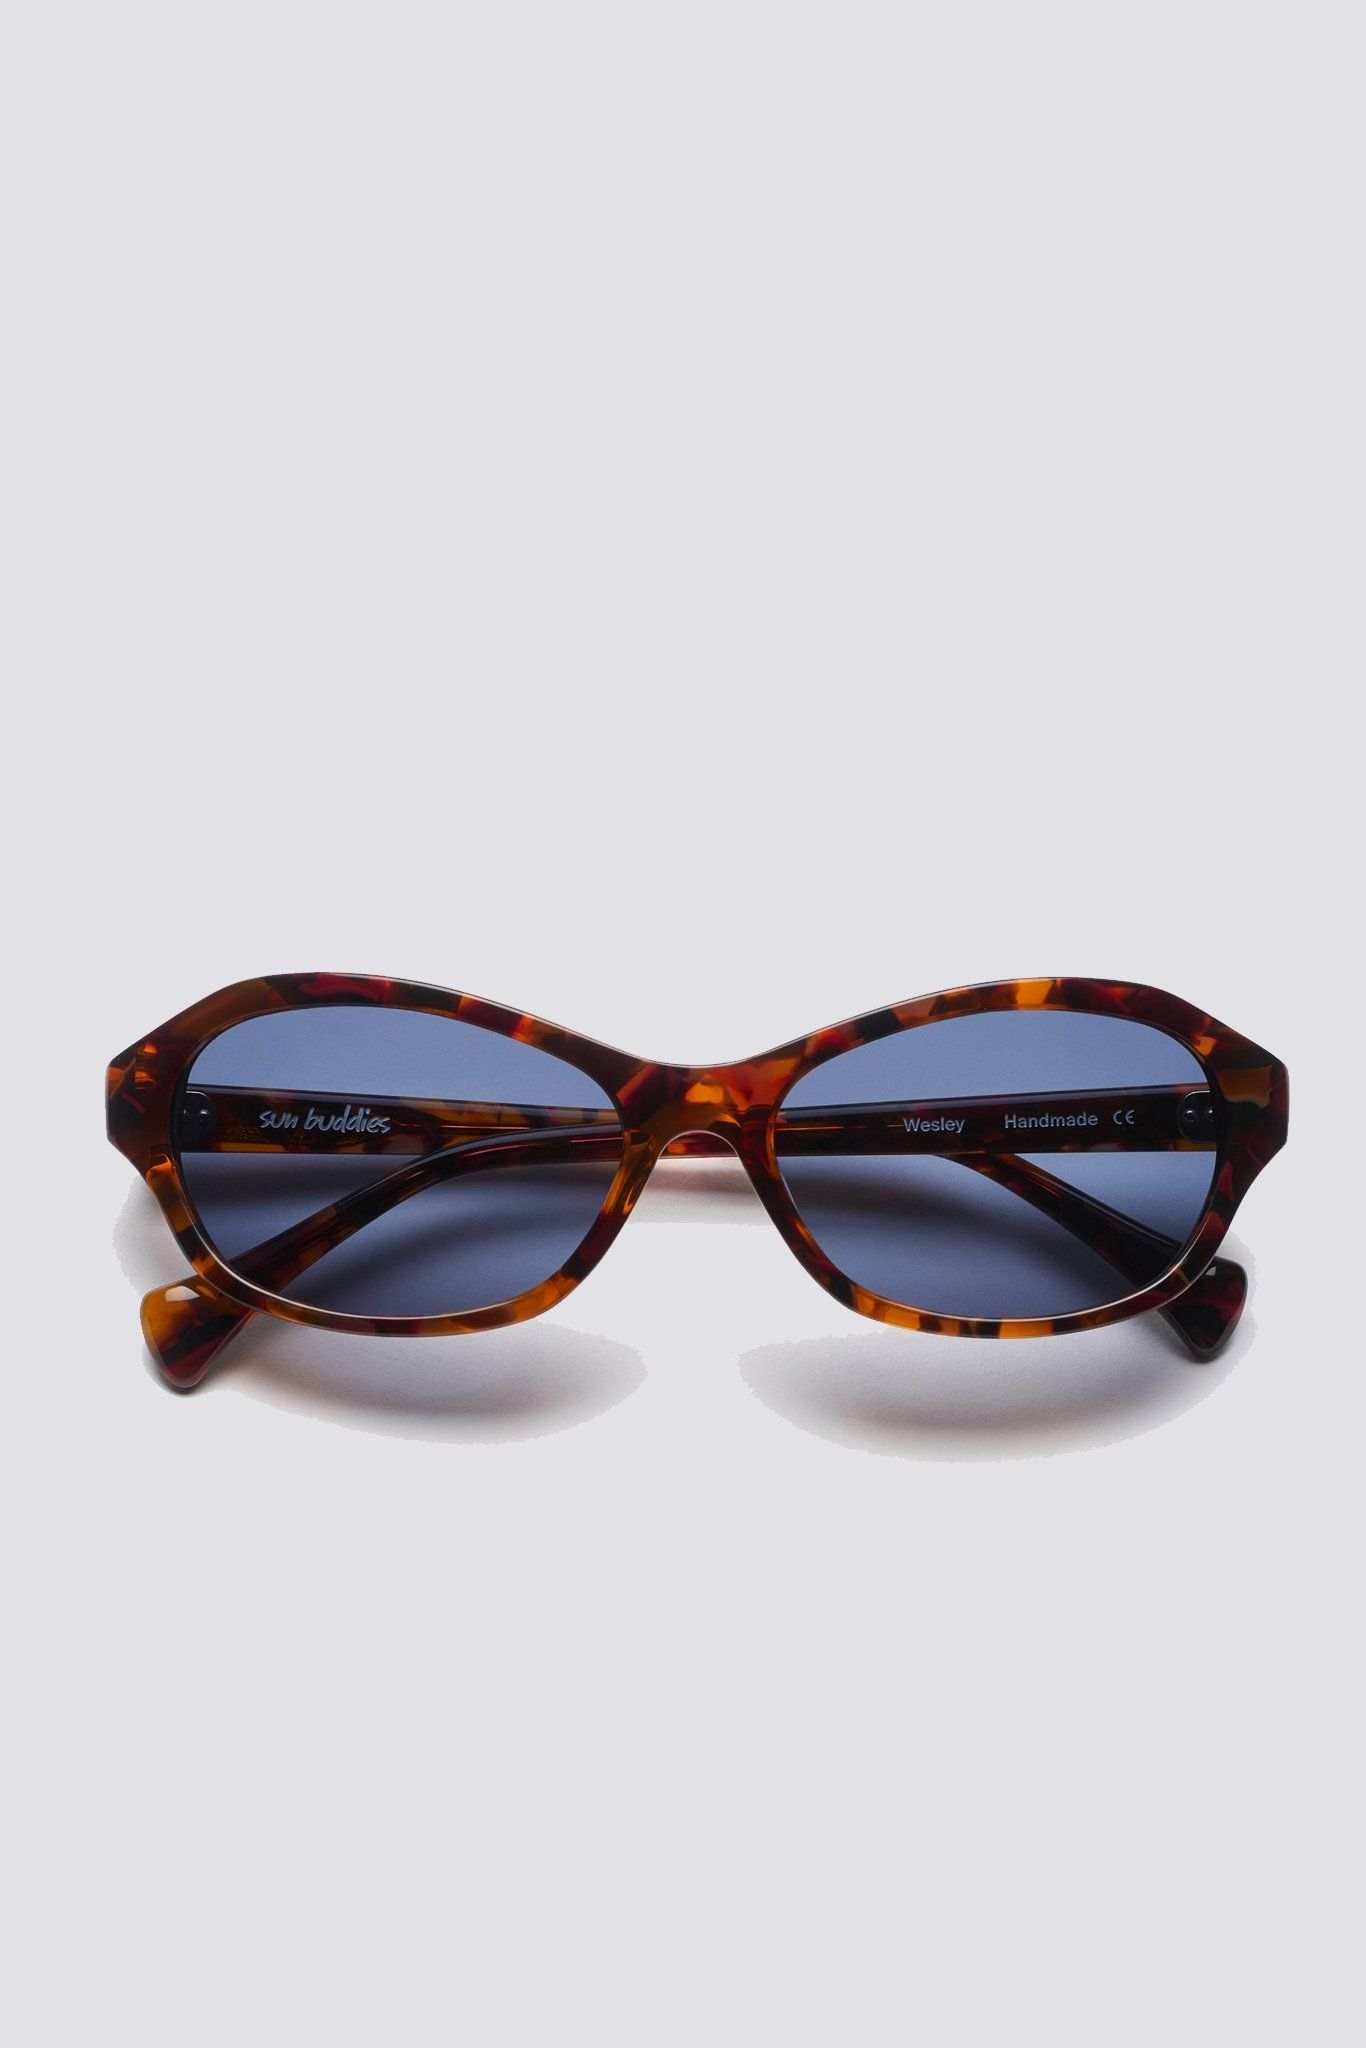 90 S Inspired Sporty Sunglasses With Semi Transparent Italian Acetate Frames And Carl Zeiss Lenses 100 Uv Protecti Sporty Sunglasses Acetate Protective Cases